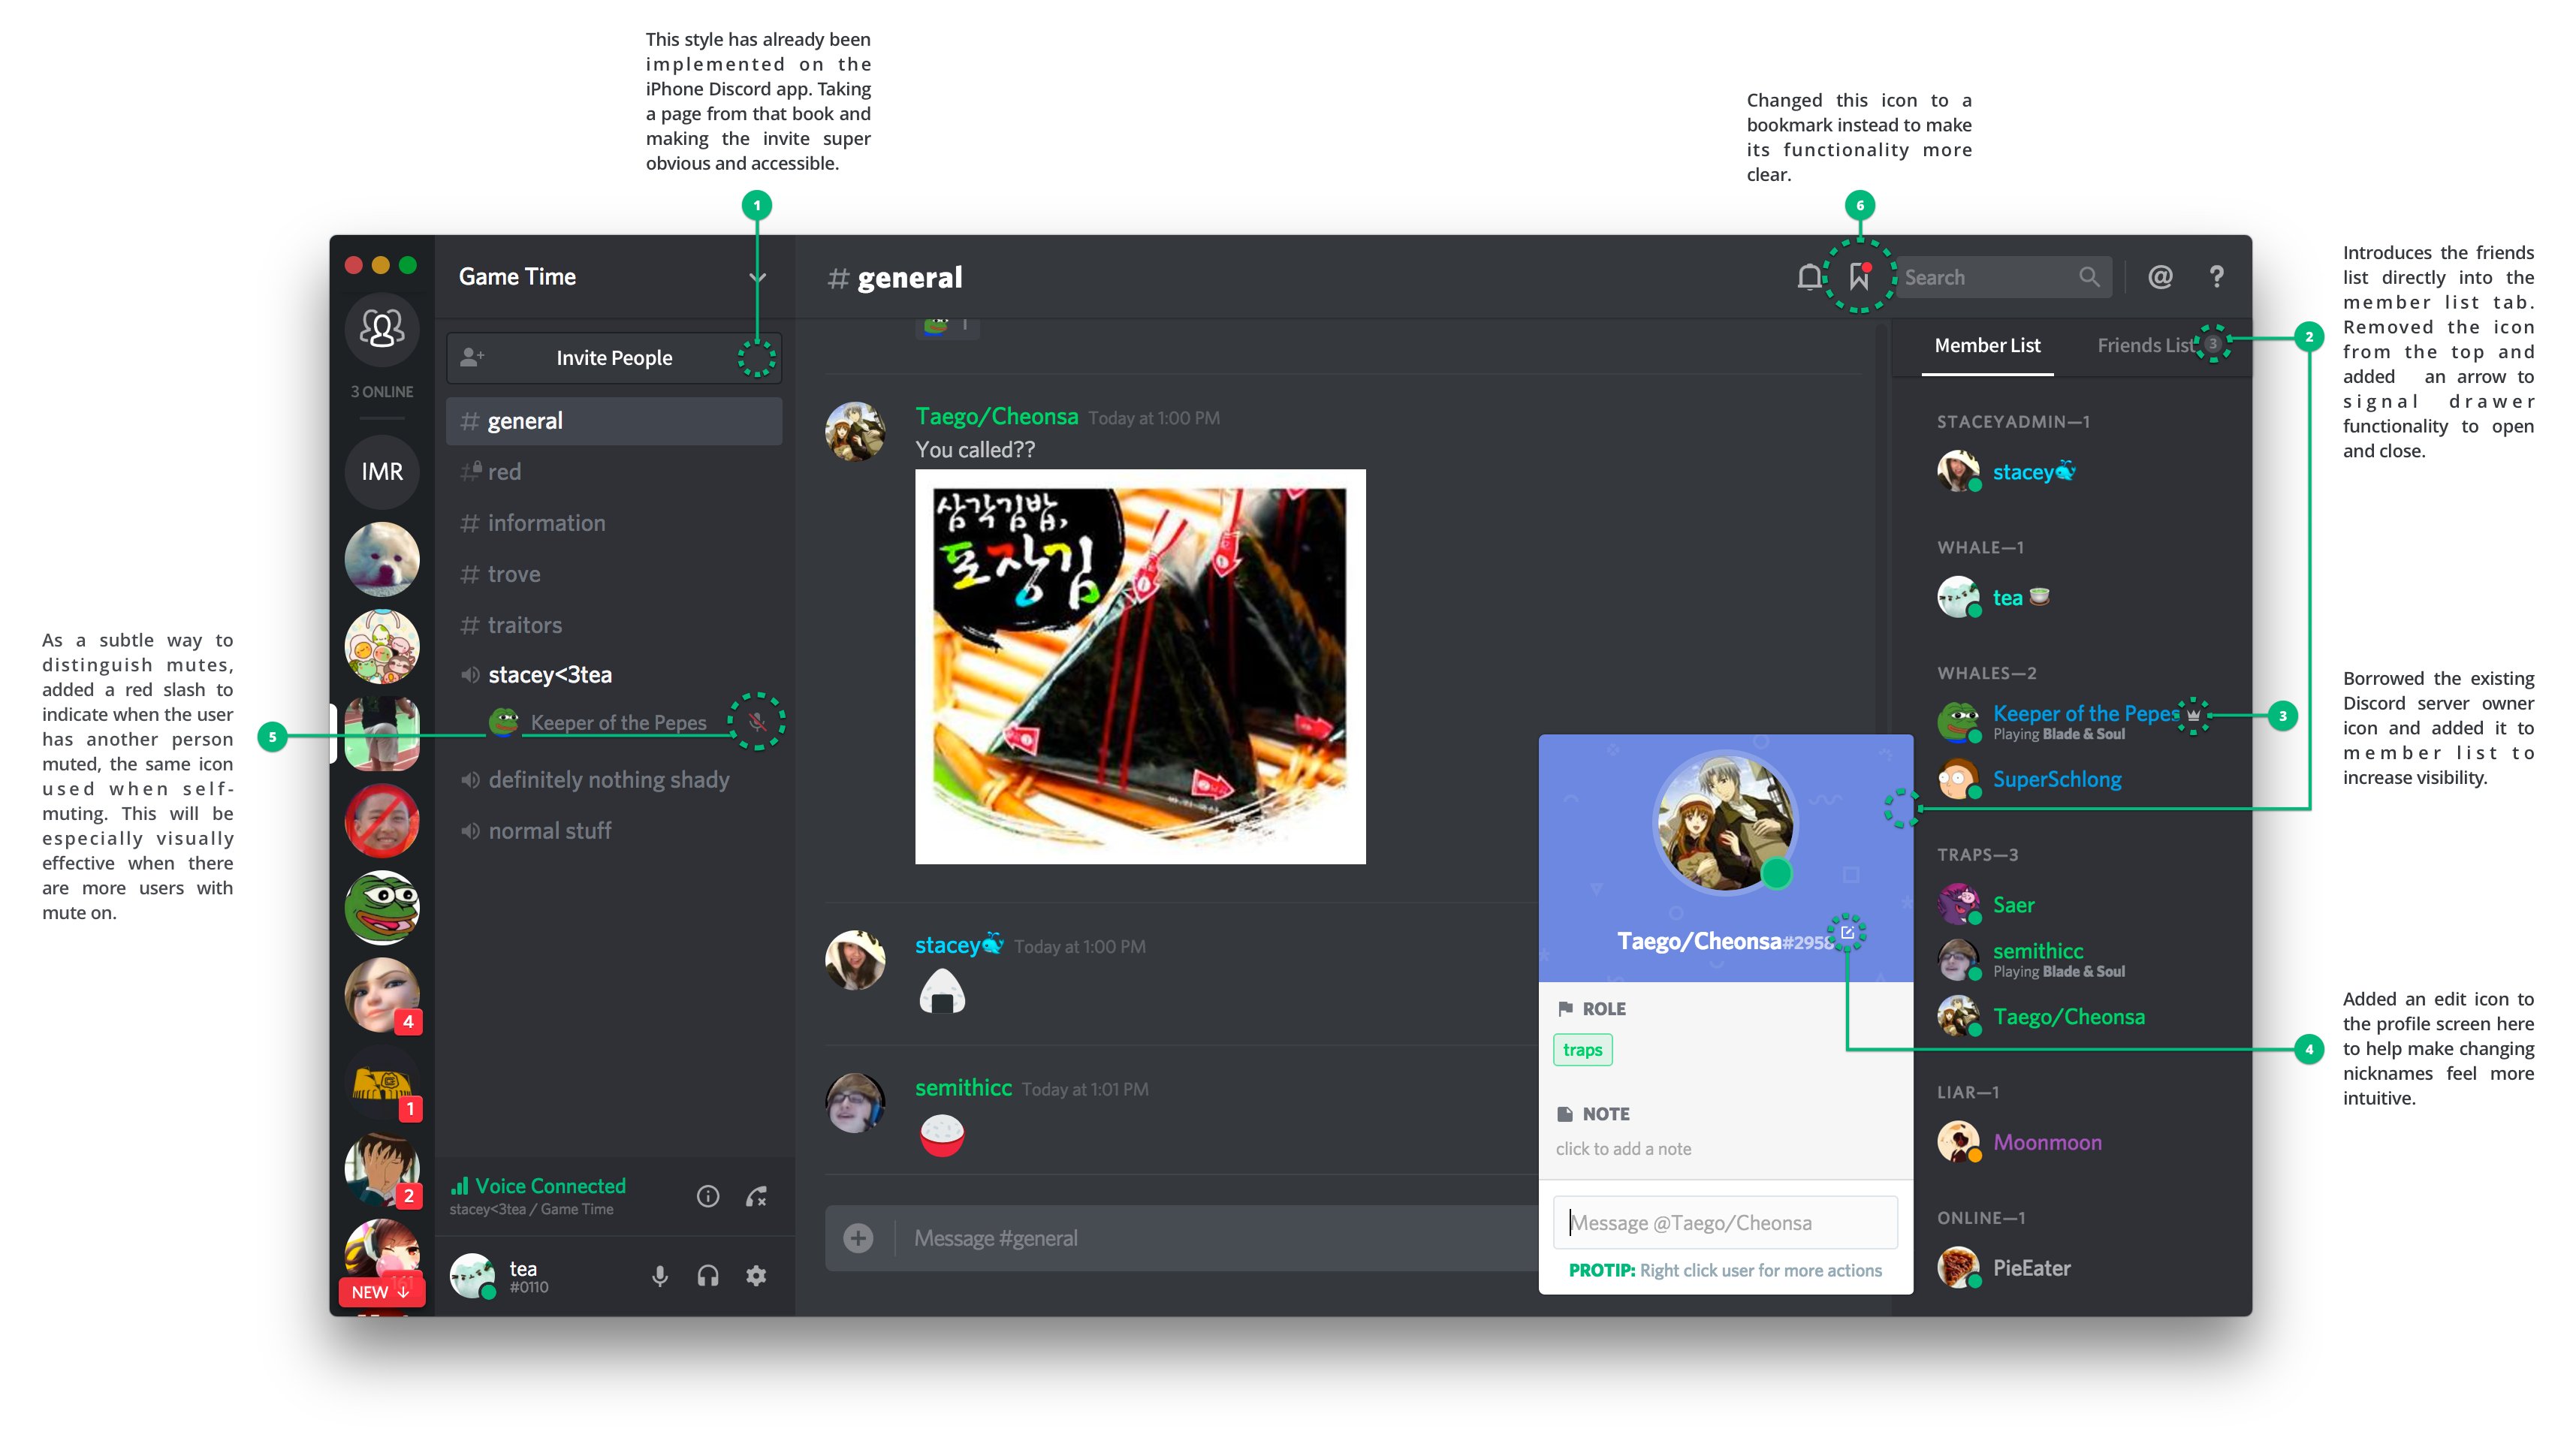 Discord After Redesign